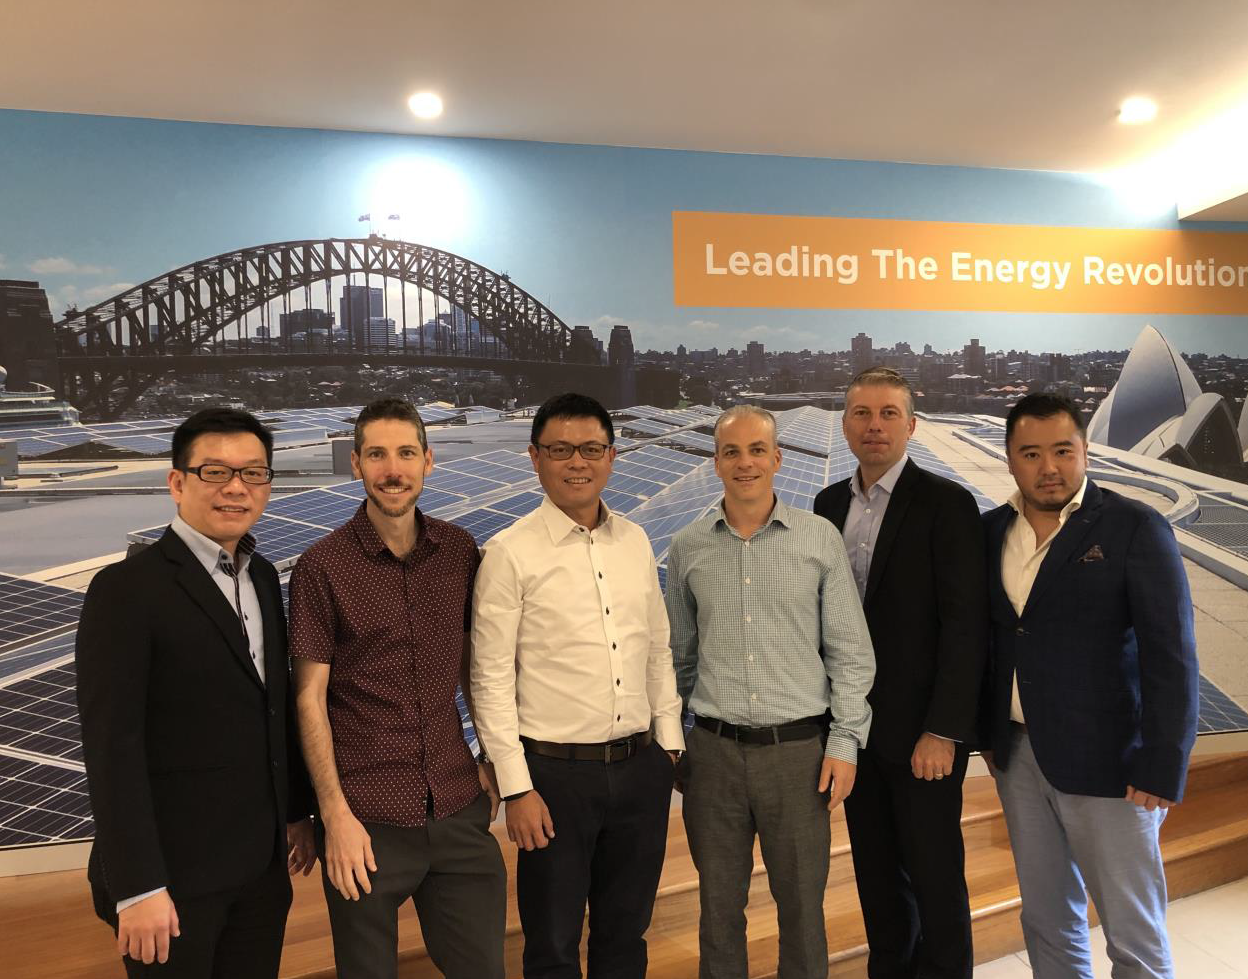 From Left: Keith Lim (CFO, Sunseap Group), Tirone Kahn (COO, Todae Solar), Lawrence Wu (Co-Founder and President, Sunseap Group), Danin Kahn (CEO, Todae Solar), Claude Von Arx (Director, Oceania, Sunseap Group), Frank Phuan (CoFounder and CEO, Sunseap Group). Credit: Sunseap